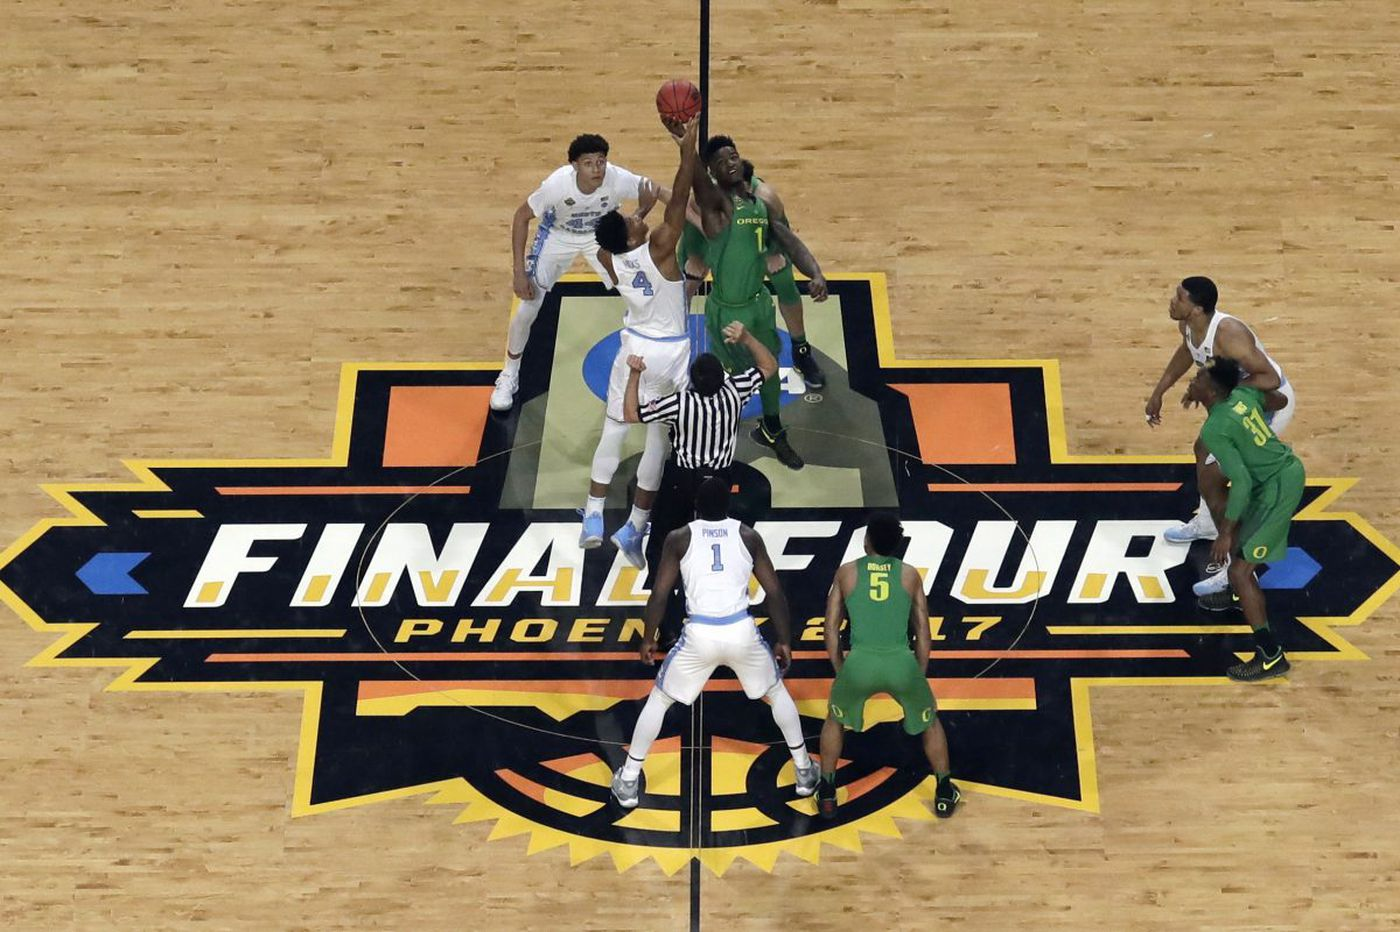 The March Madness bracket will be released on TBS, not CBS, this year. This is your warning